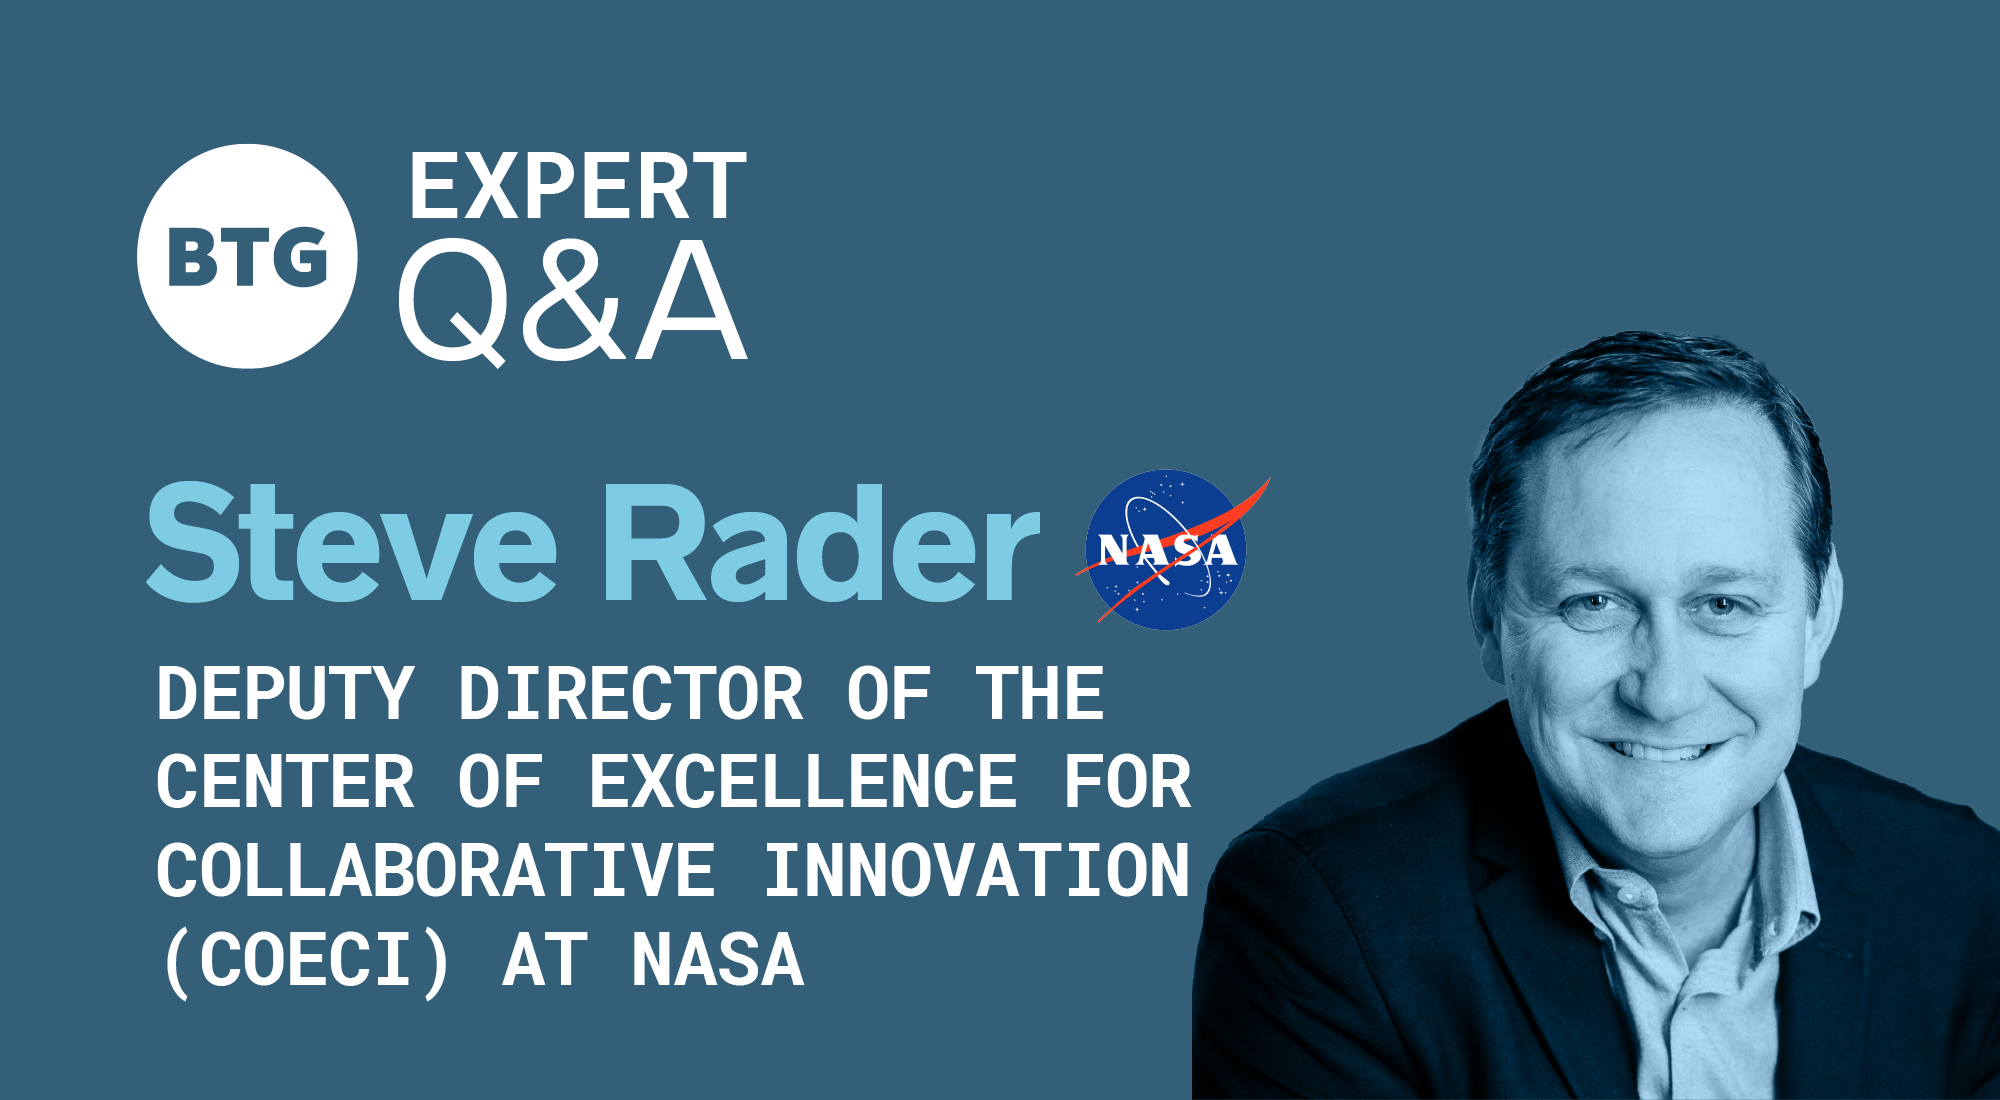 BTG Expert Q&A Blog Header: Image of Steve Rader, Deputy Director of the Center of Excellence for Collaborative Innovation at NASA